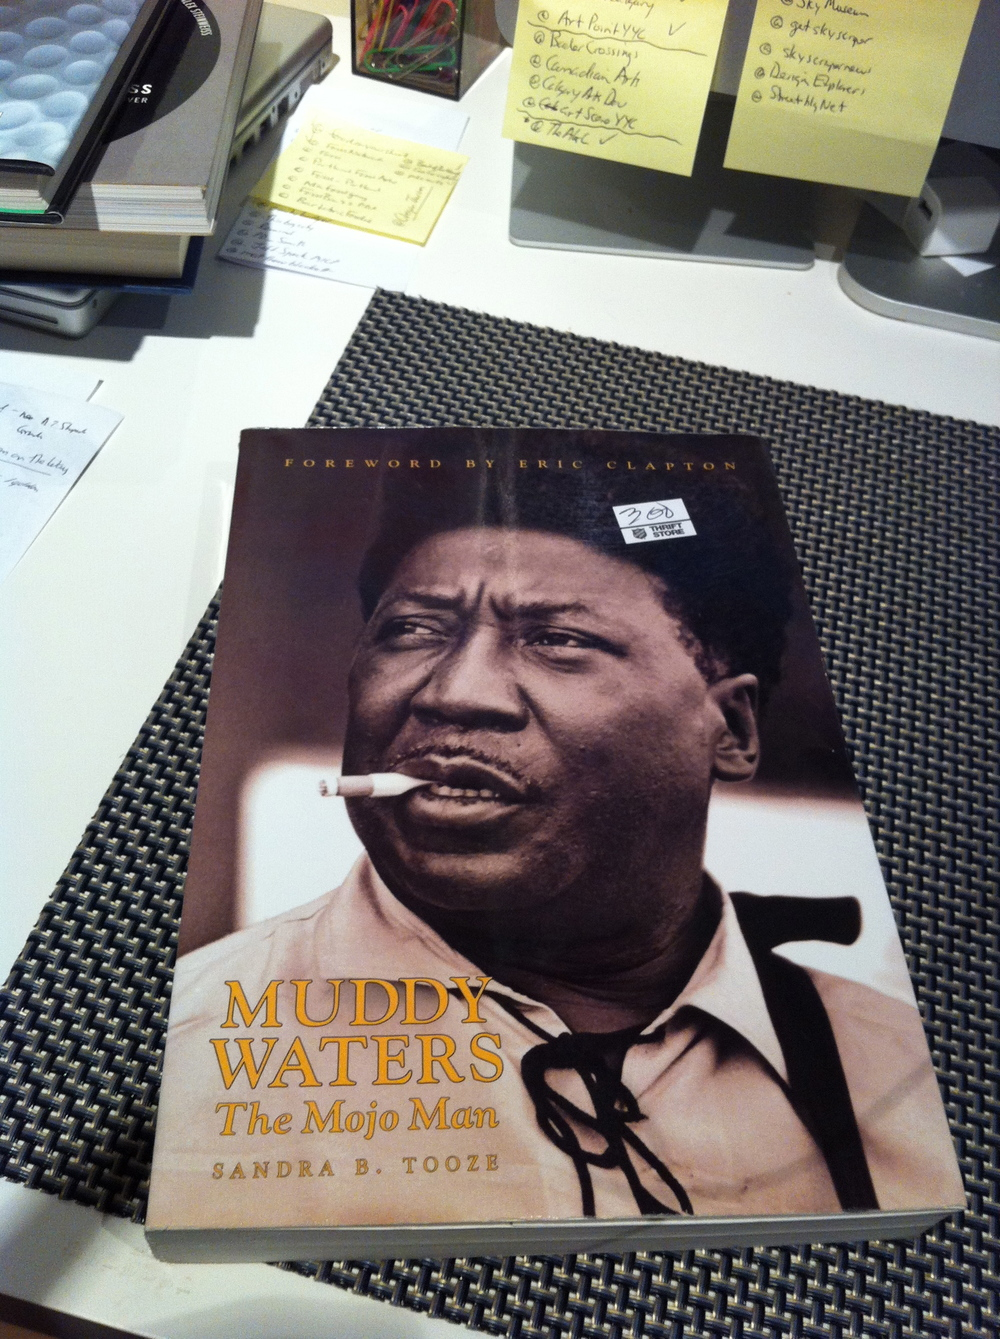 Muddy Waters: Mojo Man in great condition for $1.50...gotta love thrifting...